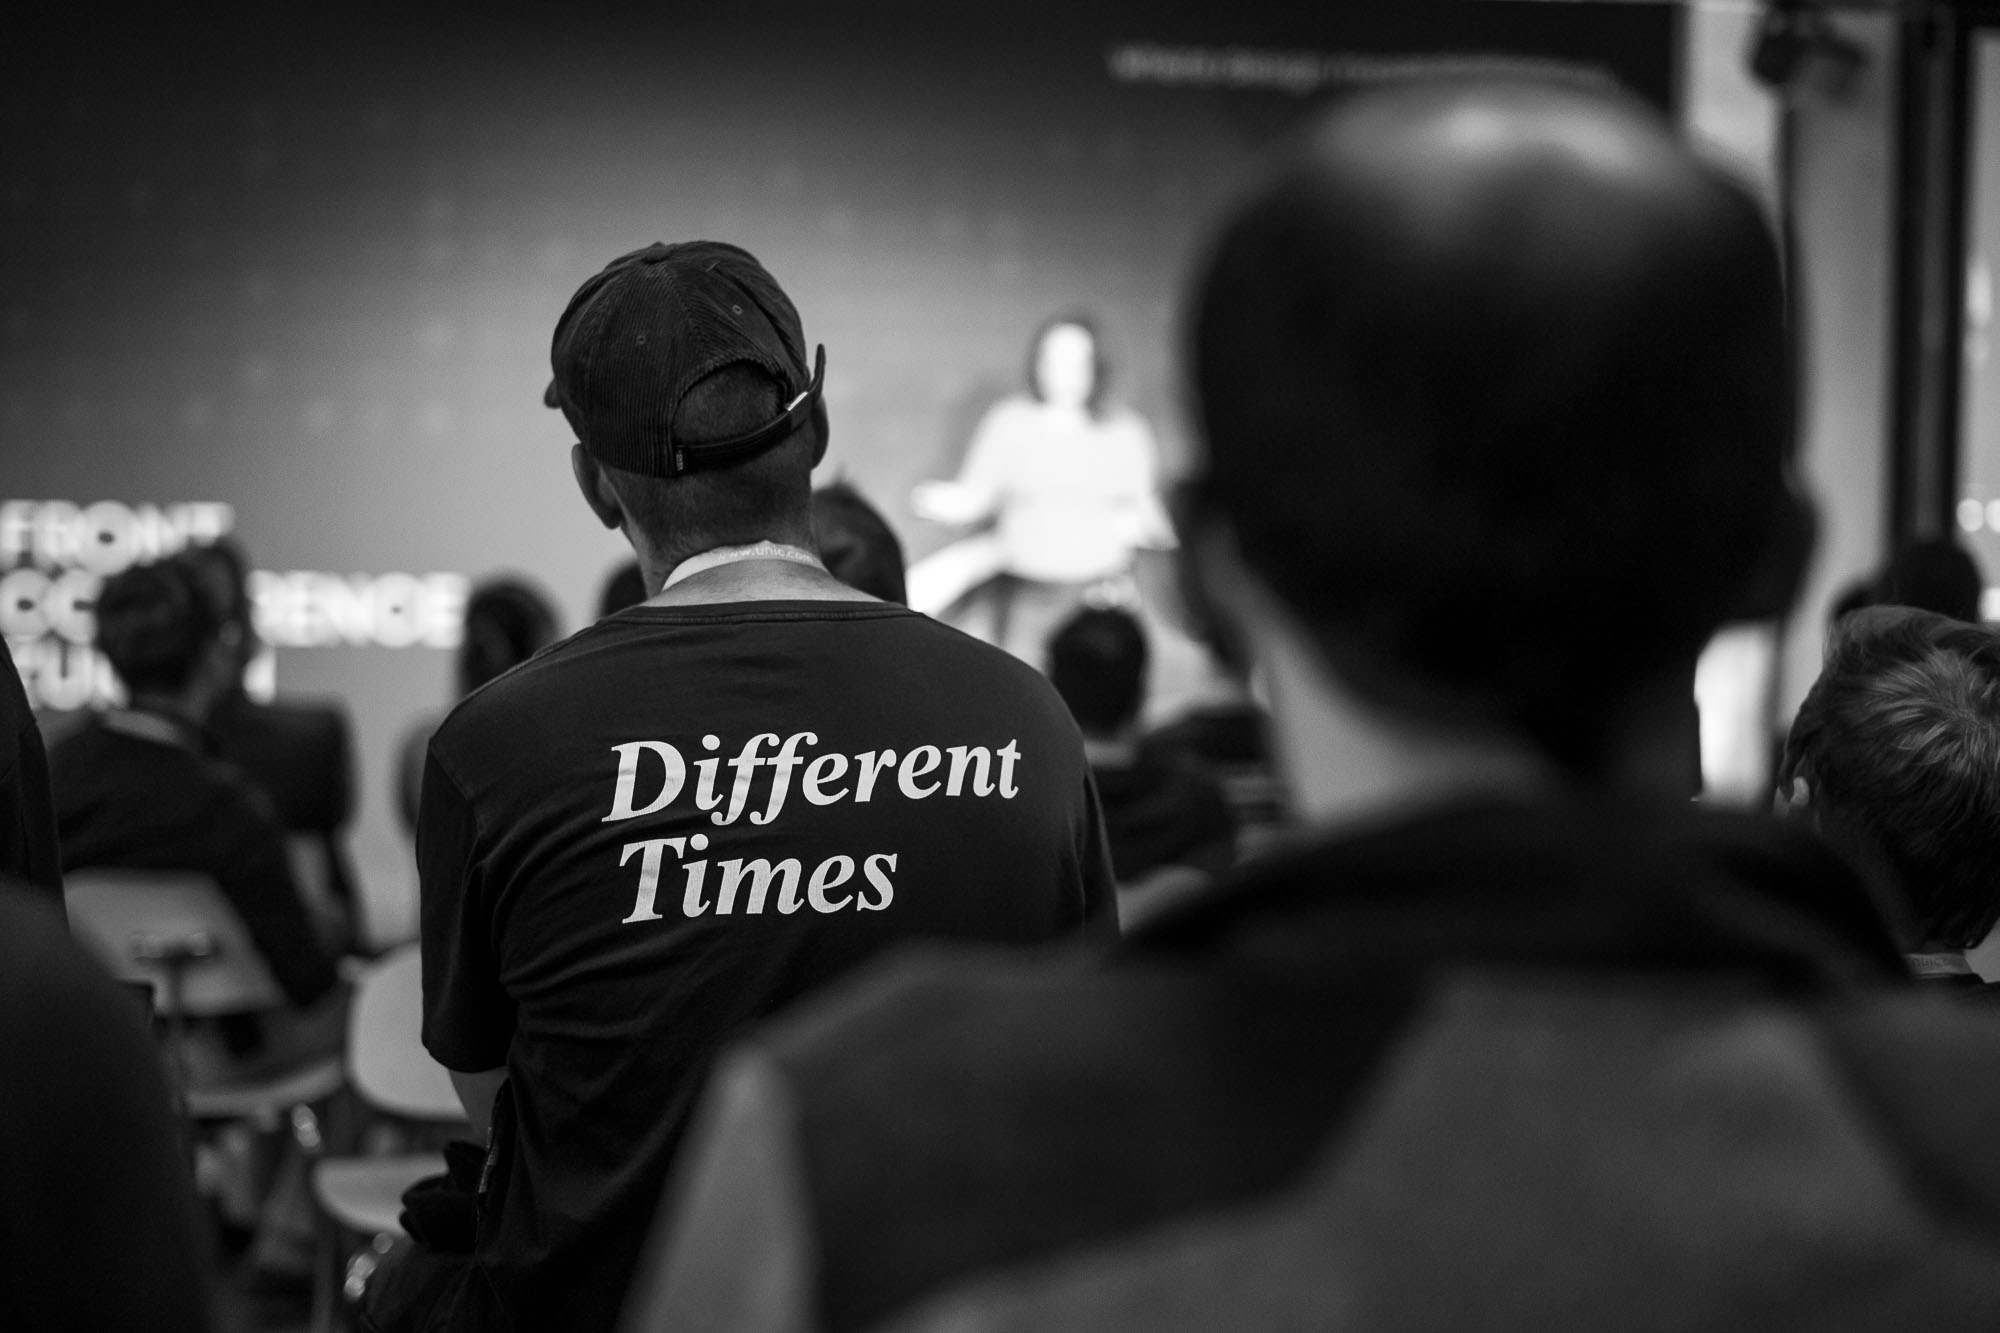 An attendee in the audience at Front Conference 2021 wears a t-shirt with a print on the back that say